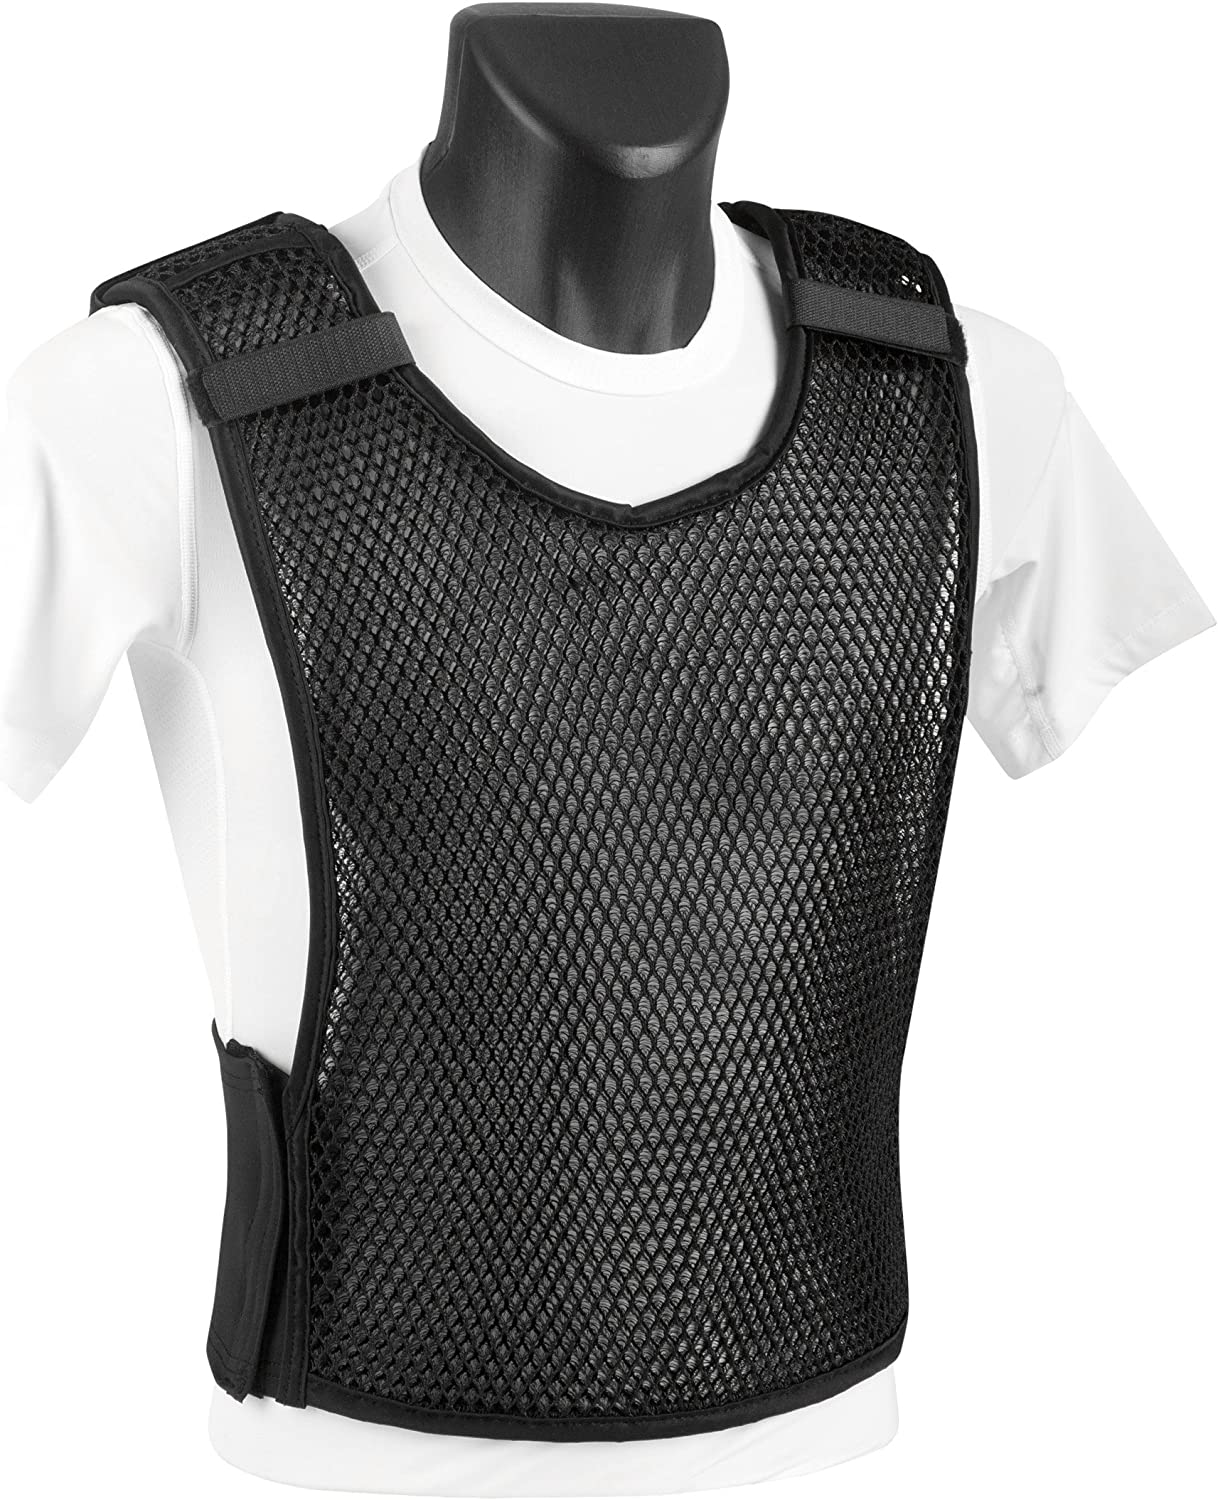 Pacific Blue Line Body Armor Cooling Vest, Tactical Ballistic Ventilation Air Flow - Draft Vest 3.5